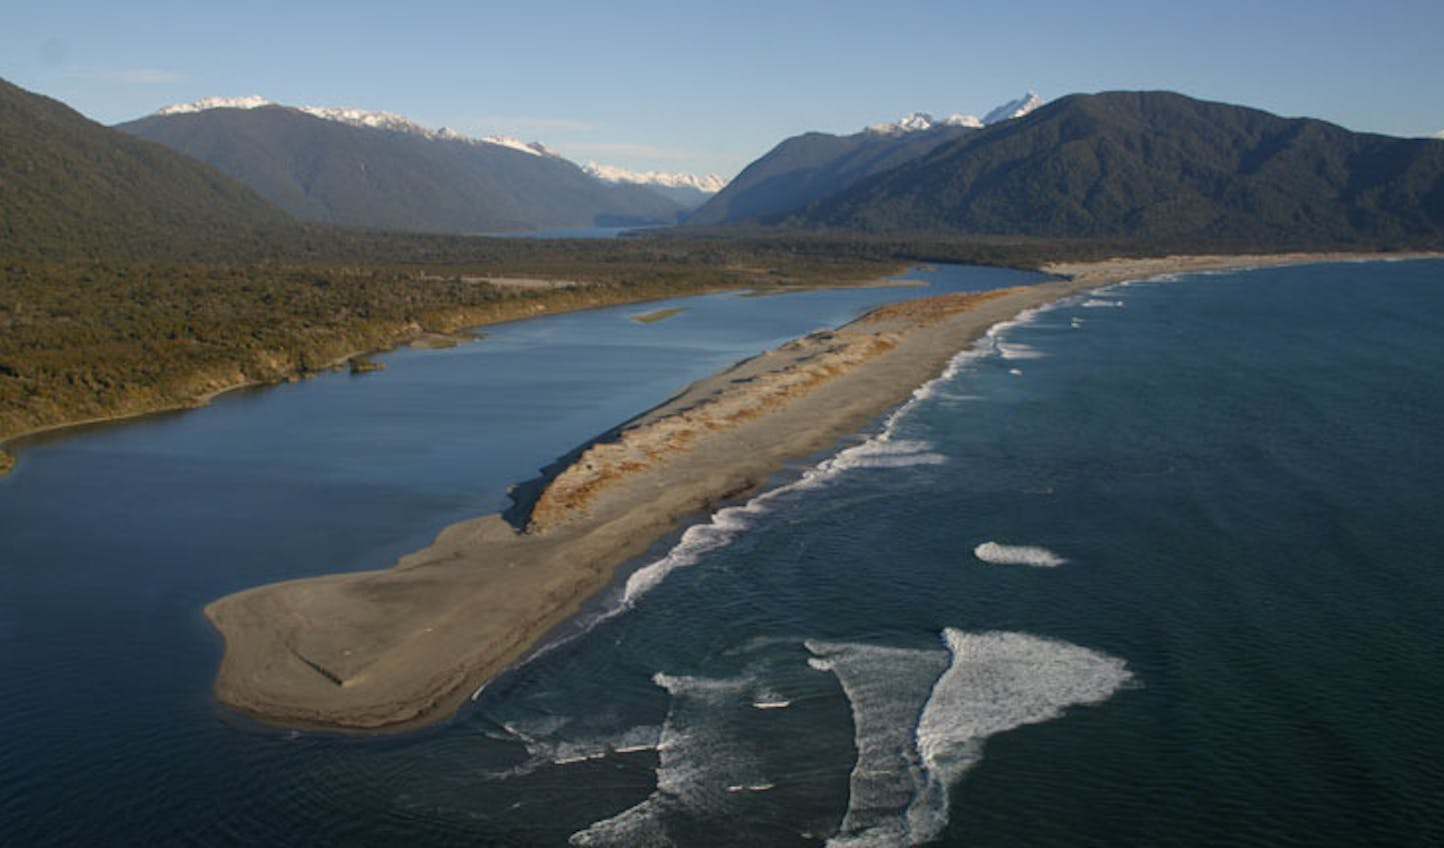 the view from a helicopter in New Zealand